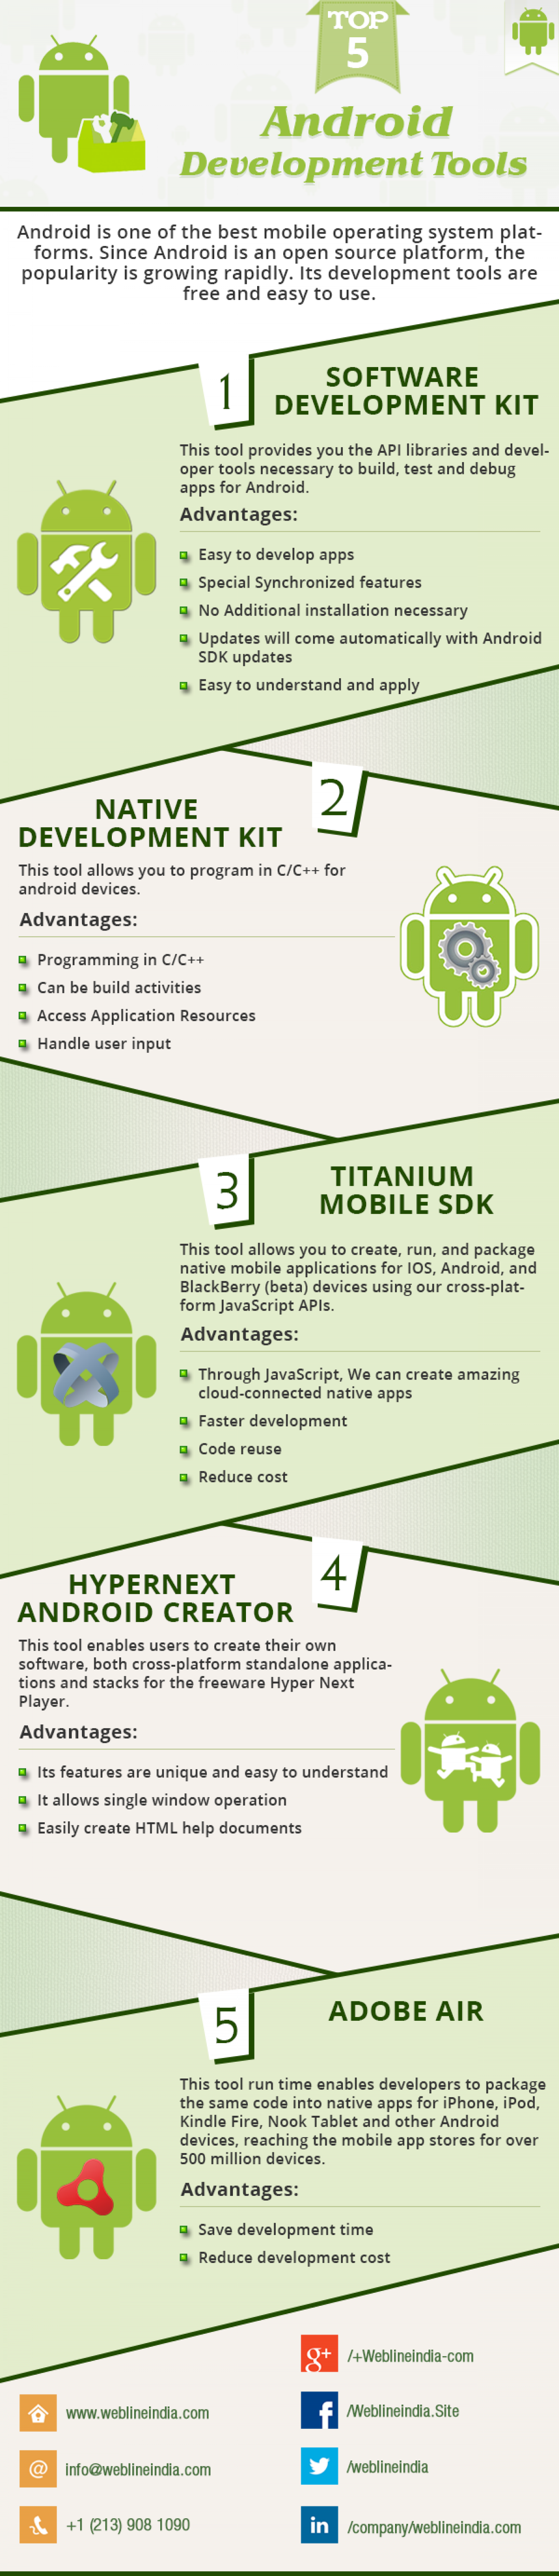 Top 5 Android Development Tools Infographic